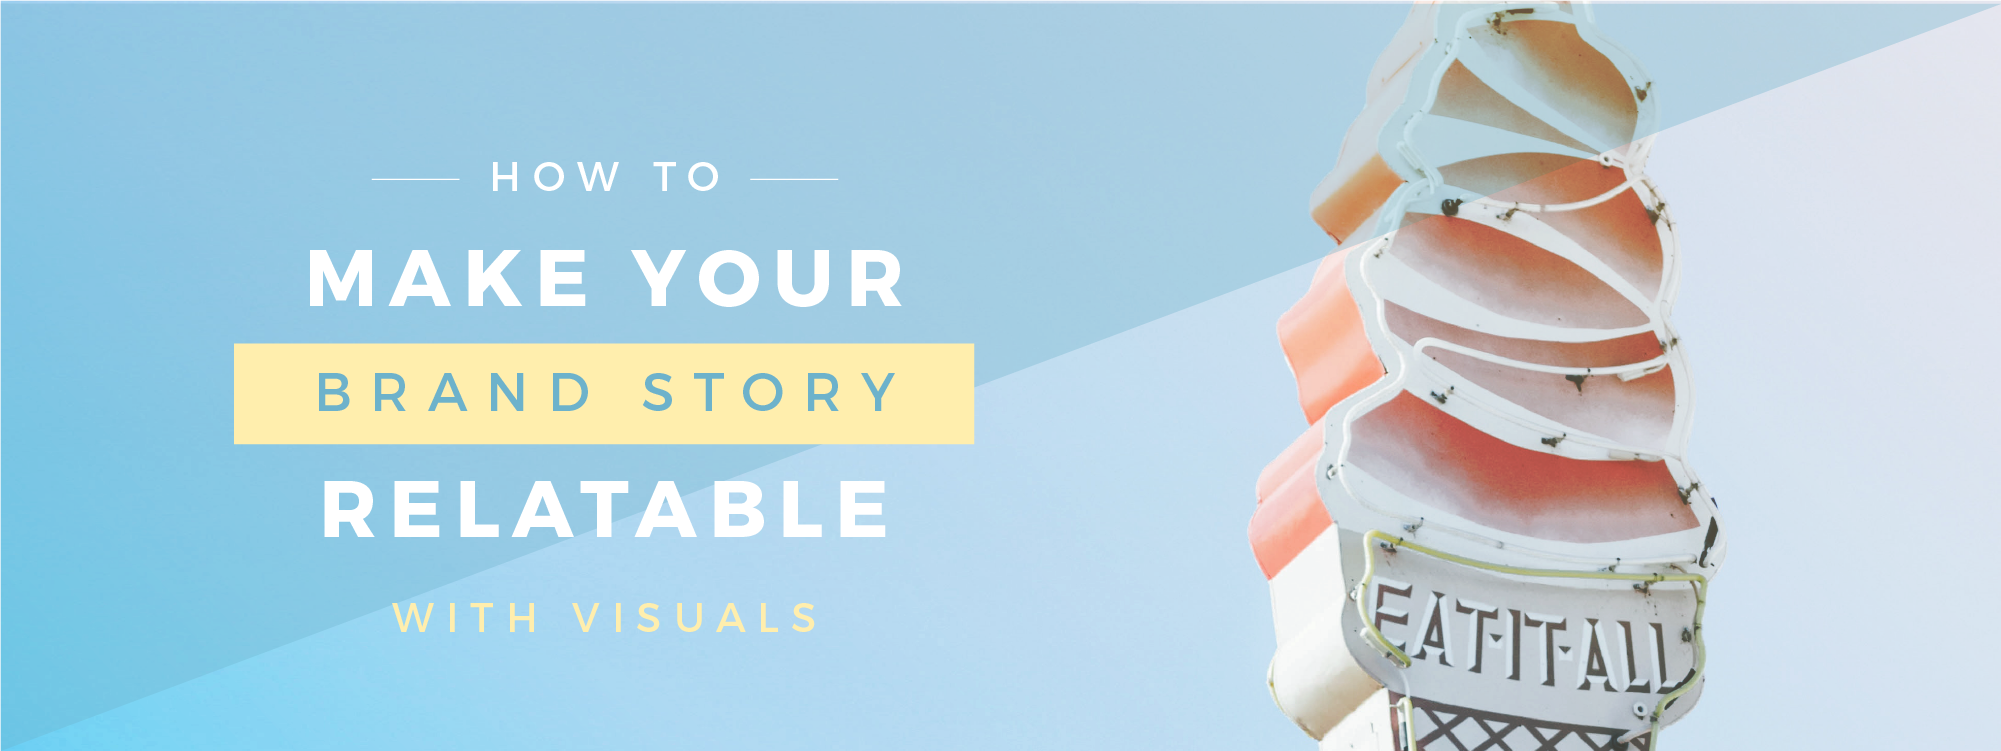 Visuals to make your brand story more relatable